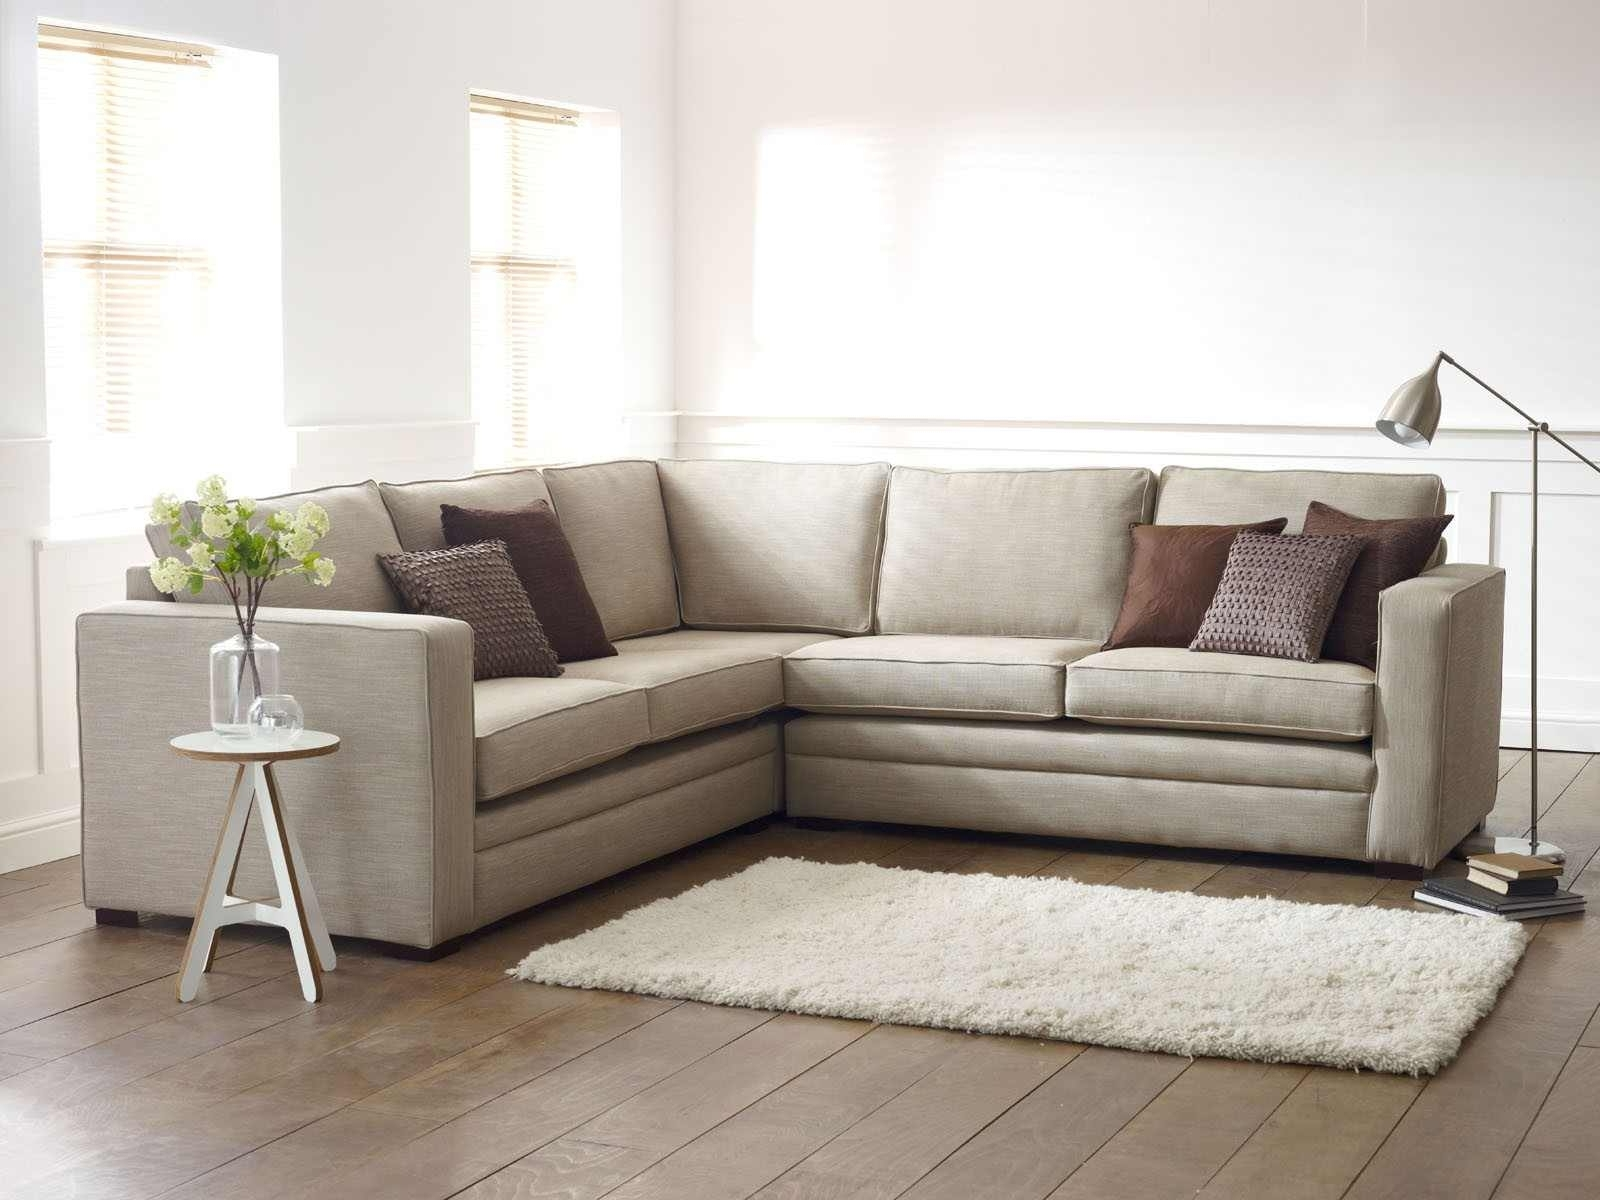 Best And Newest Sofa : L Shaped Sofa With 2 Recliners Ava Tufted Sleeper Sofa L With L Shaped Sectional Sofas (View 10 of 20)